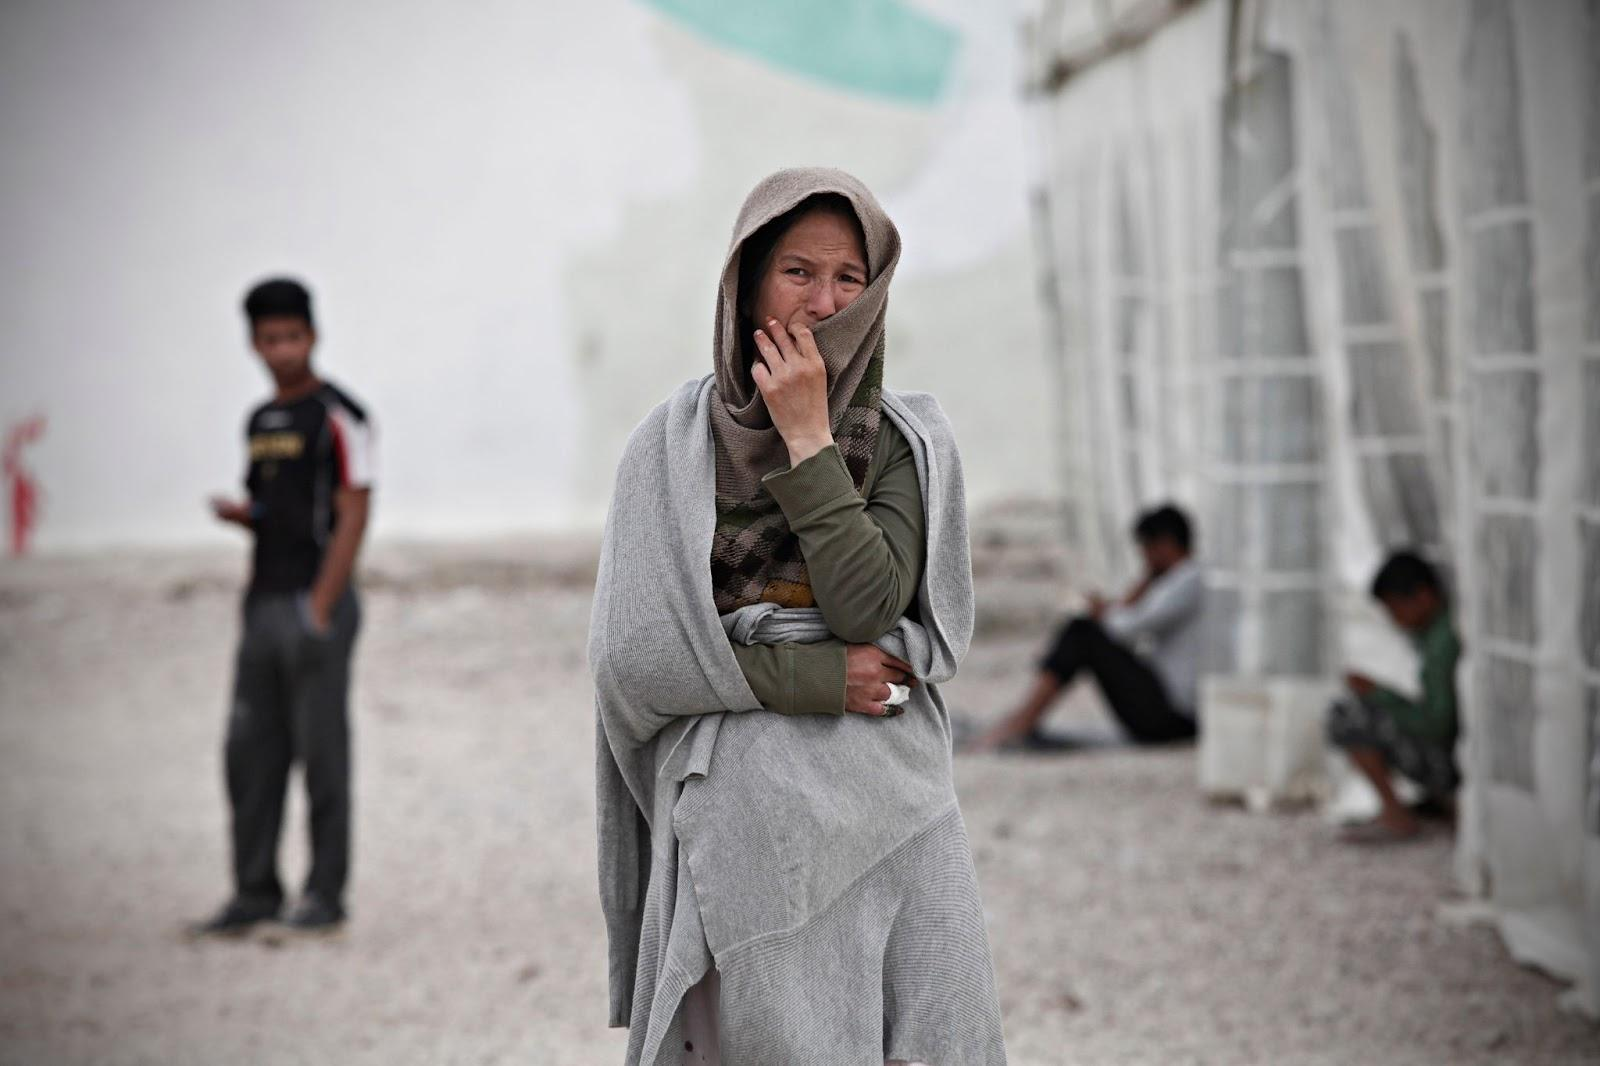 An afghan woman stands in the center of the photo holding on to her hijab. She has a sullen facial expression.